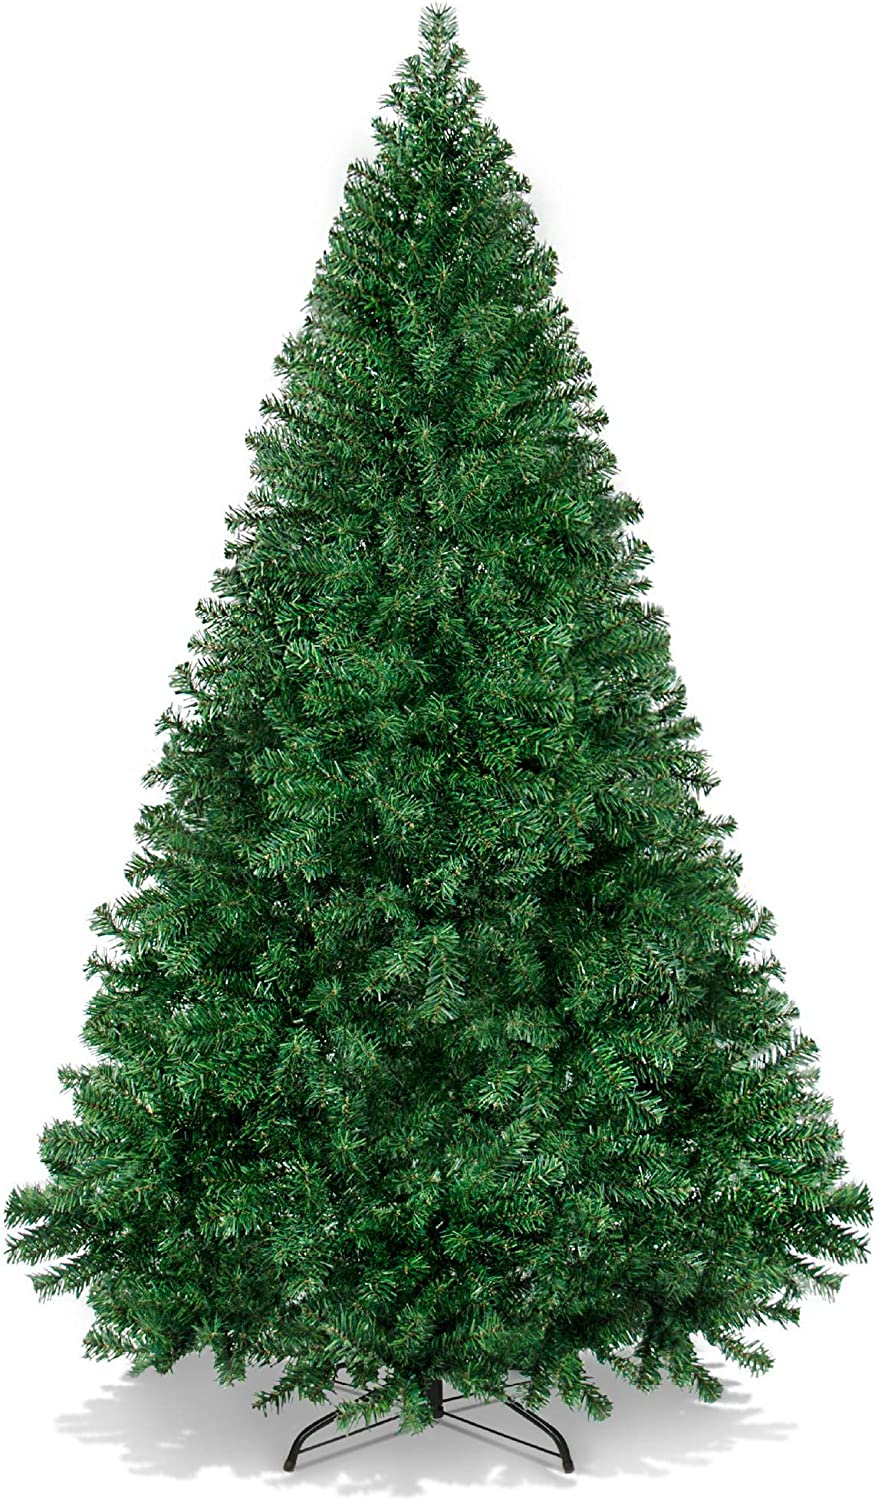 Best Choice Products 6ft Premium Hinged Artificial Holiday Christmas Pine Tree For Home Office Party Decoration W 1 000 Branch Tips Easy Assembly Metal Hinges Foldable Base Green Home Kitchen Amazon Com